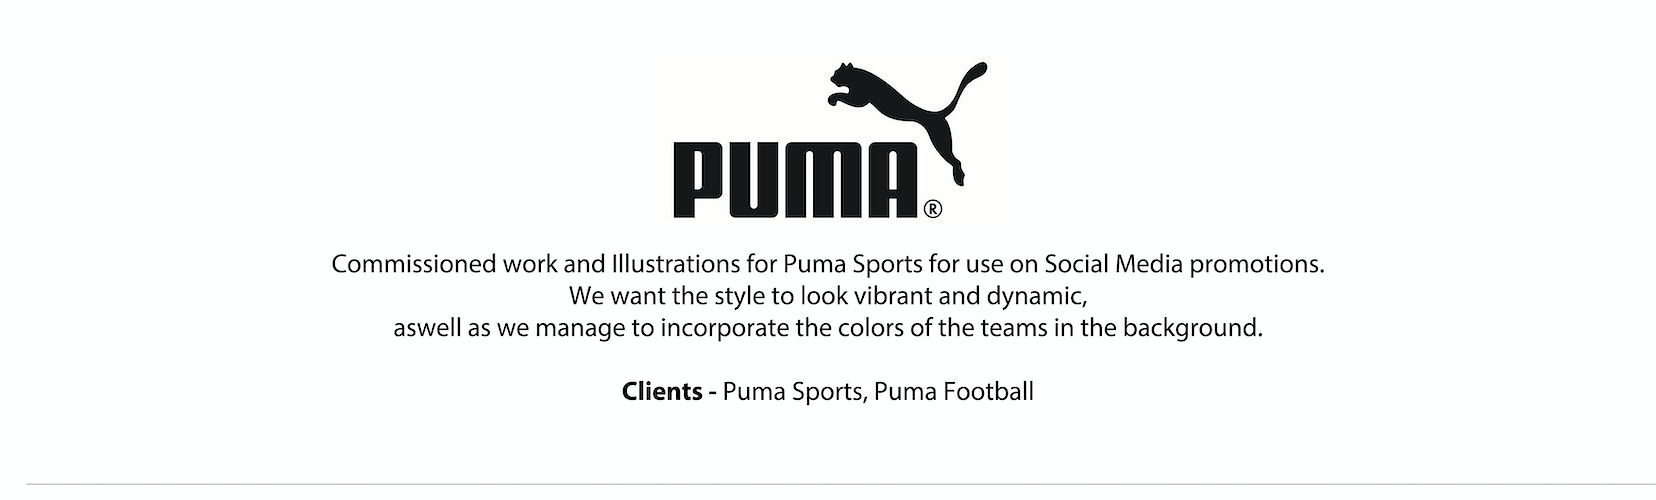 Puma Football - GUNDERSONS™ - Design Studio / Poster Shop